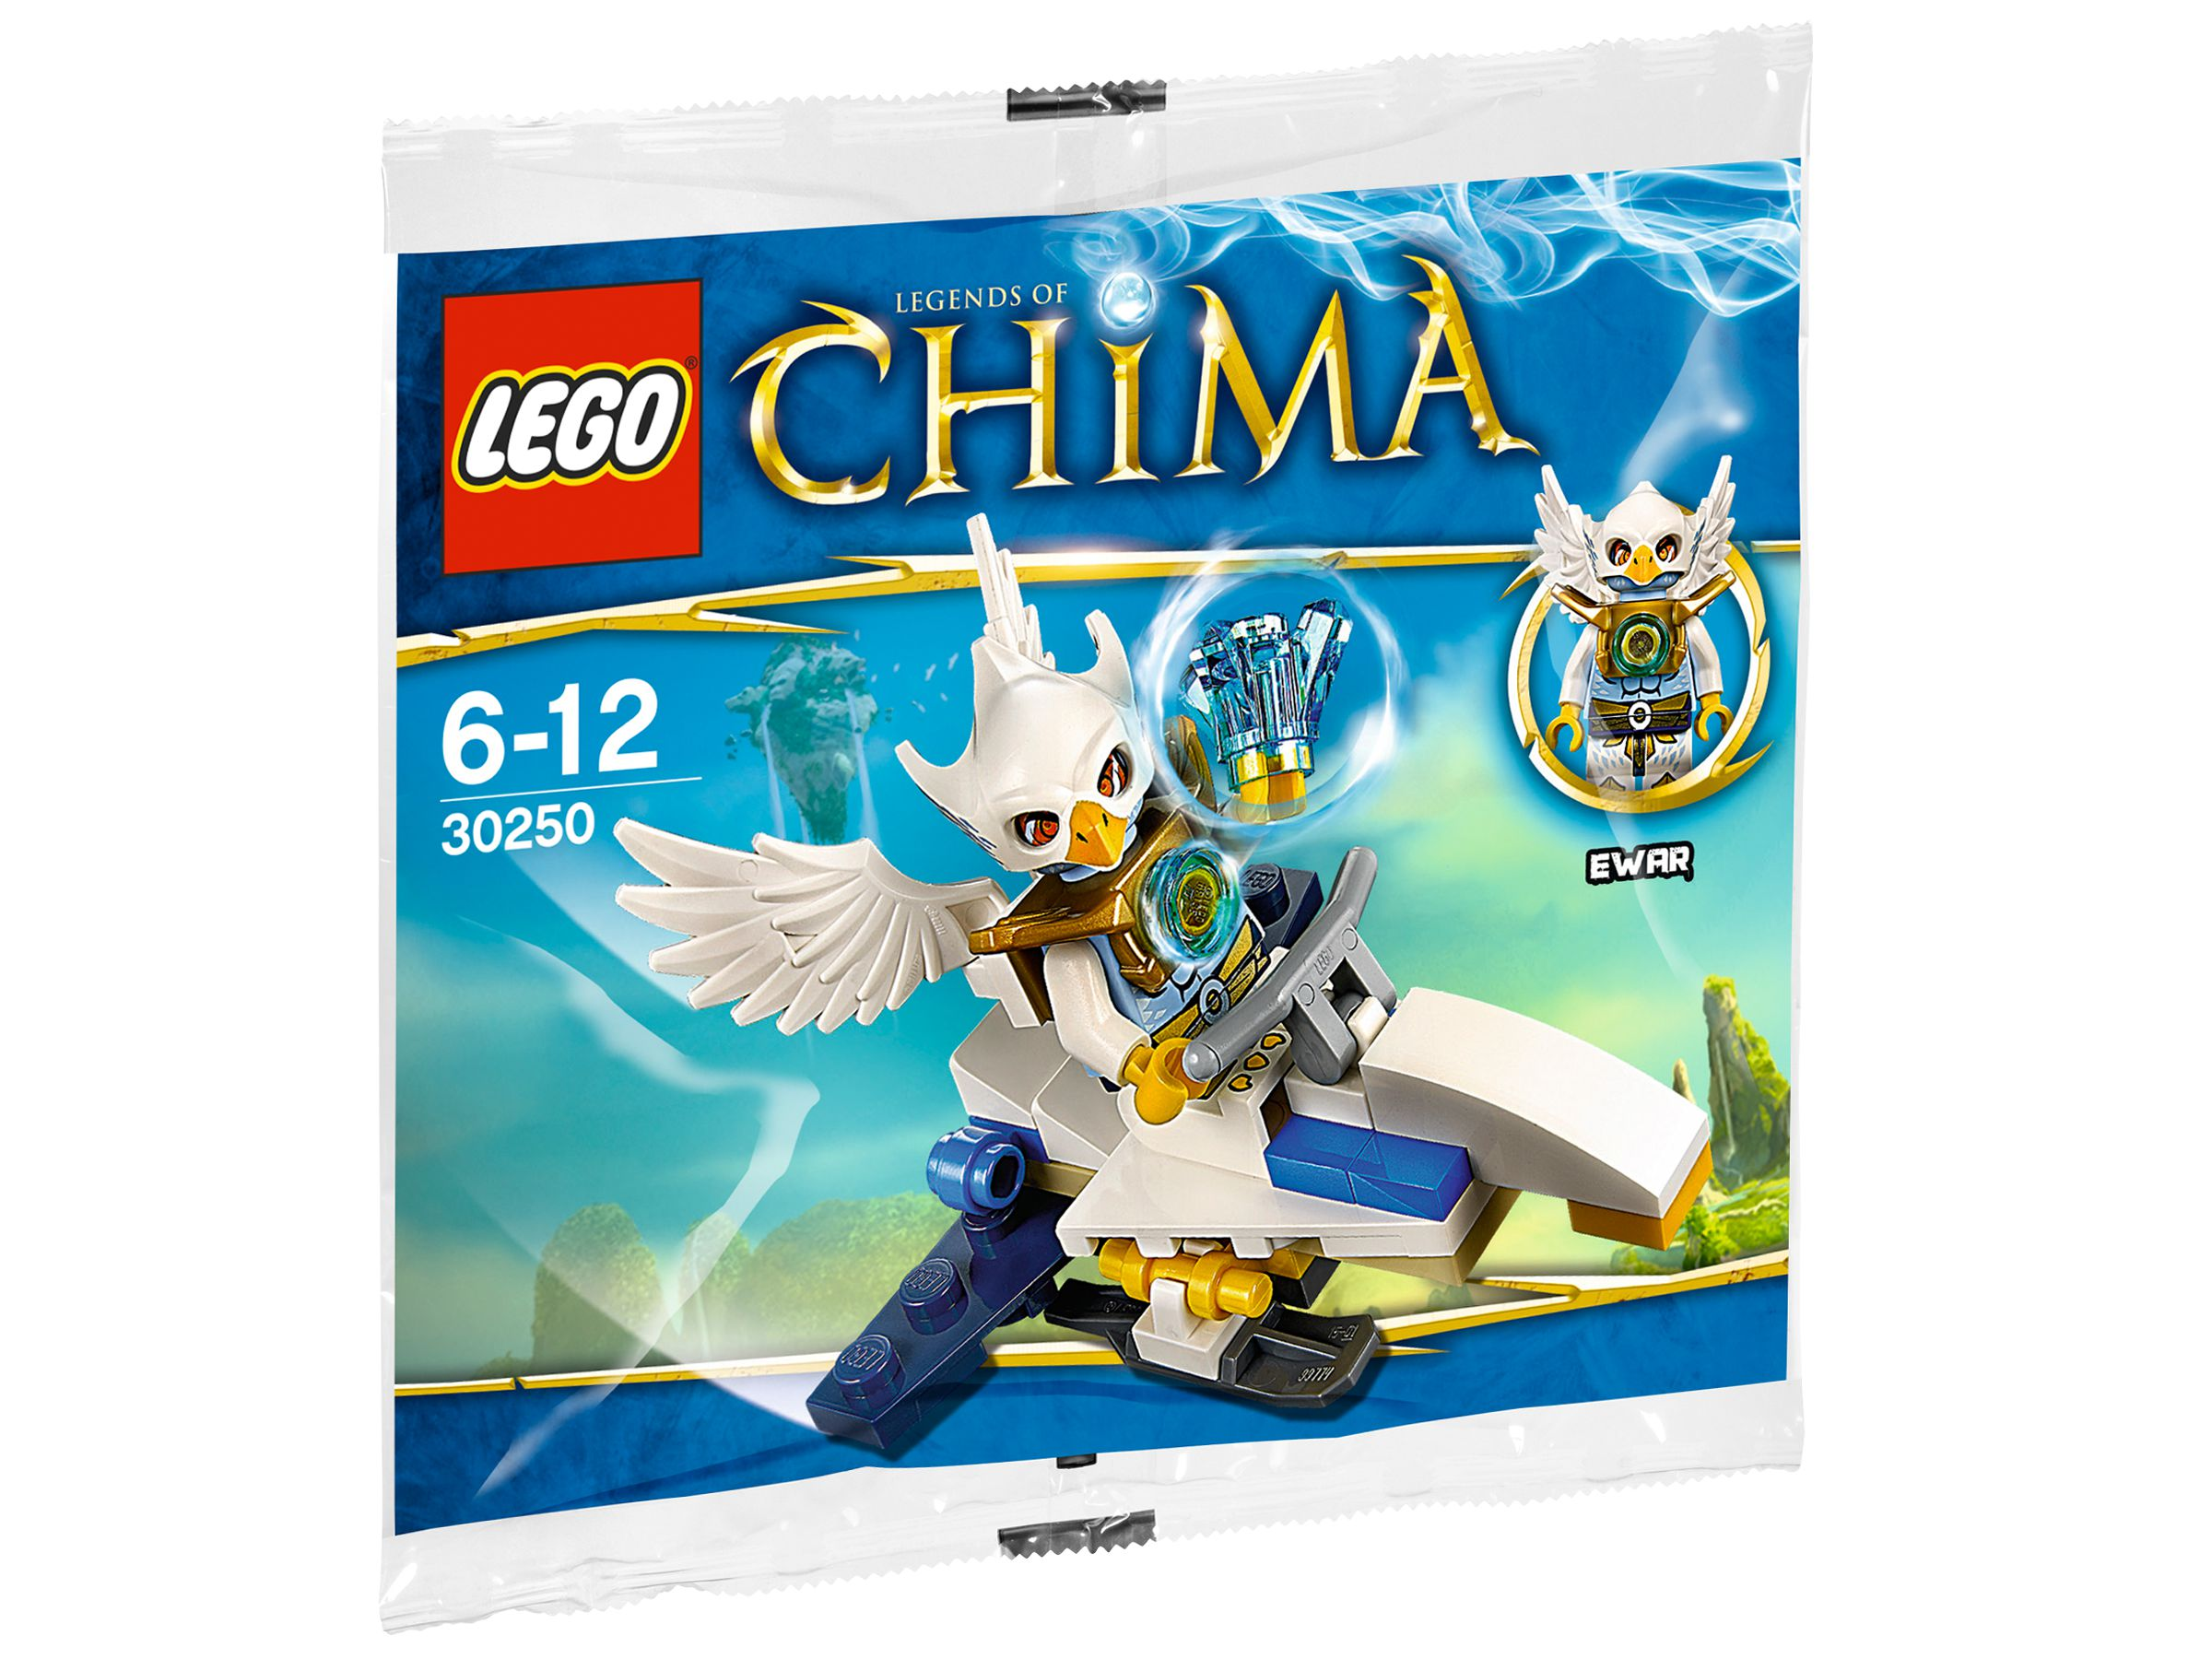 LEGO Legends Of Chima 30250 CHIMA Ewar's Acro-Fighter LEGO_30250_alt1.jpg